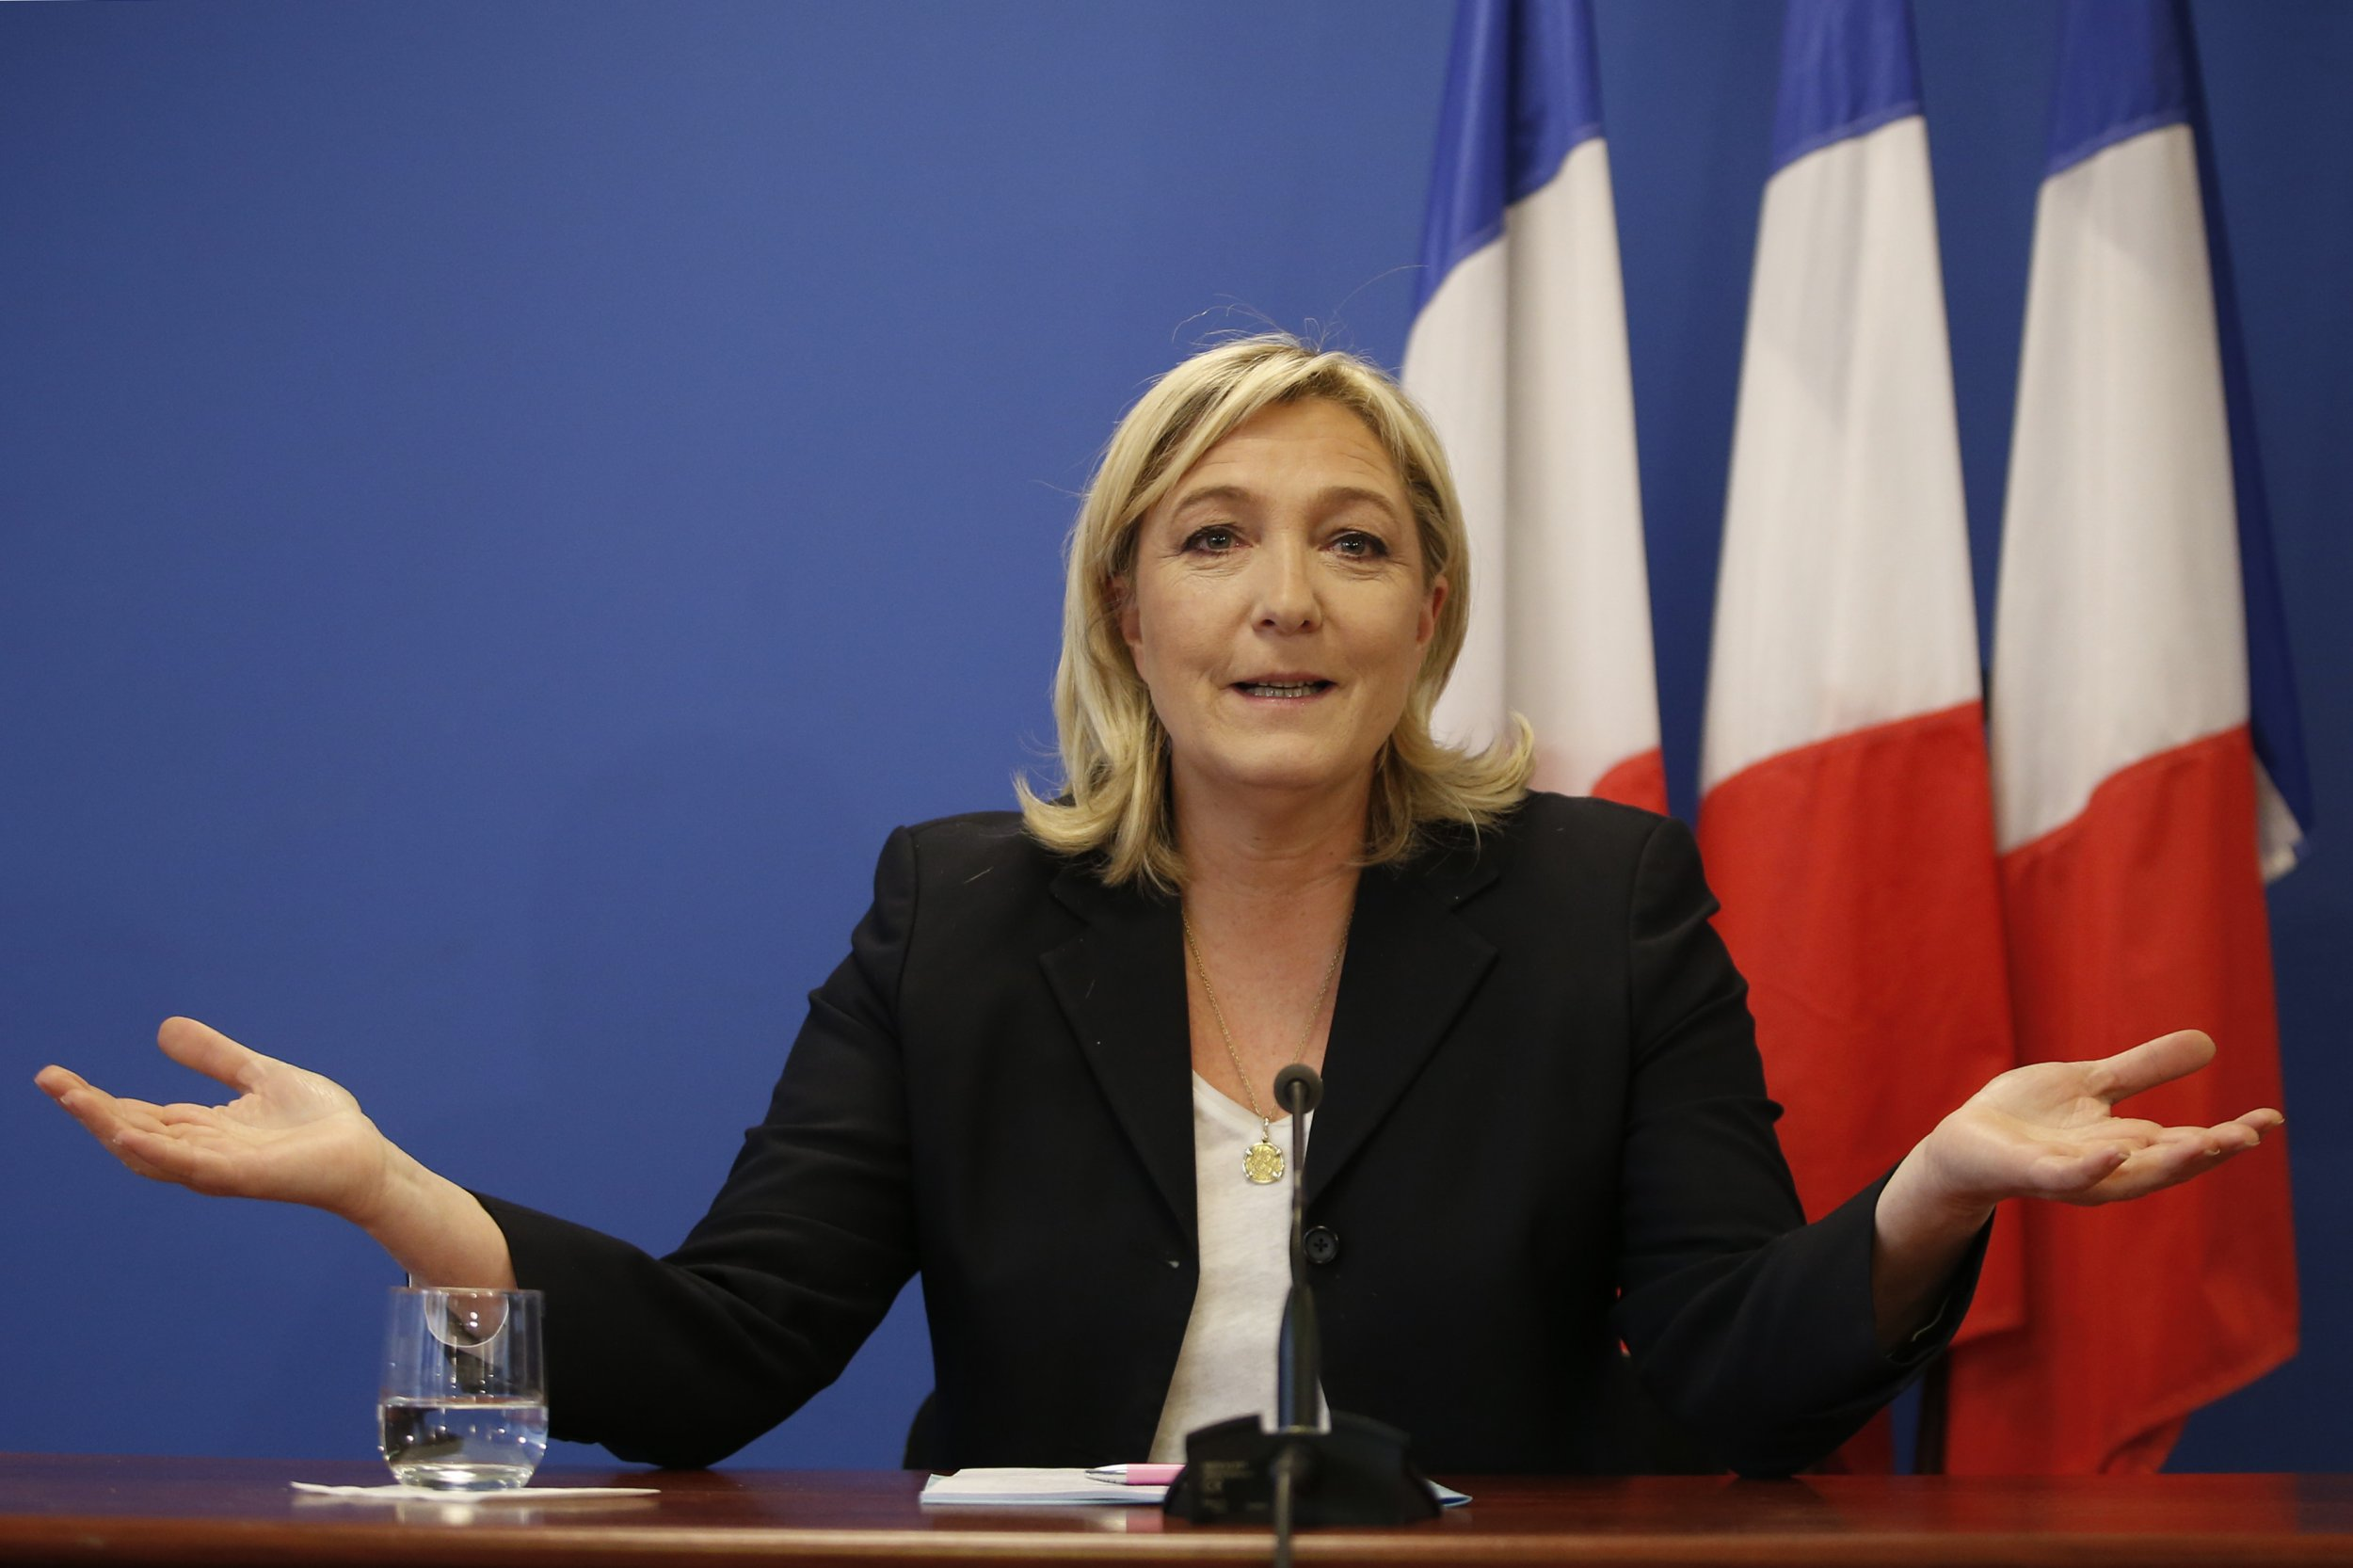 Front National Leader Marine Le Pen's Reading List Leaked